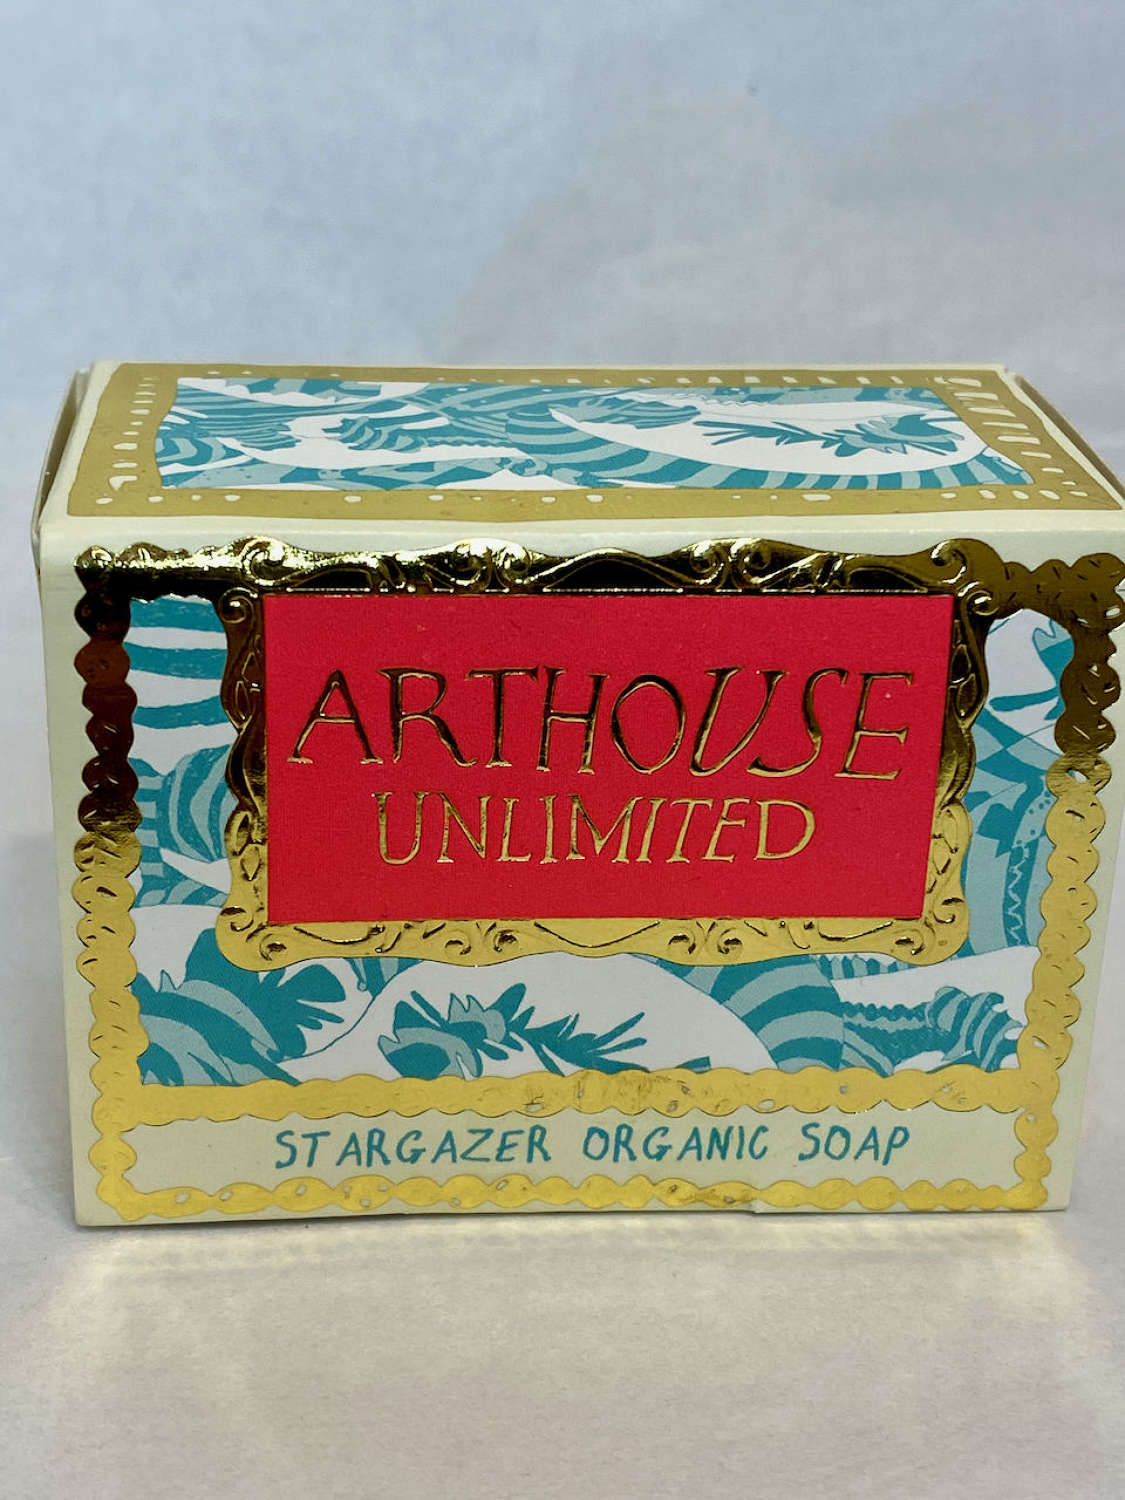 Arthouse organic soap - Stargazer lily and hibiscus